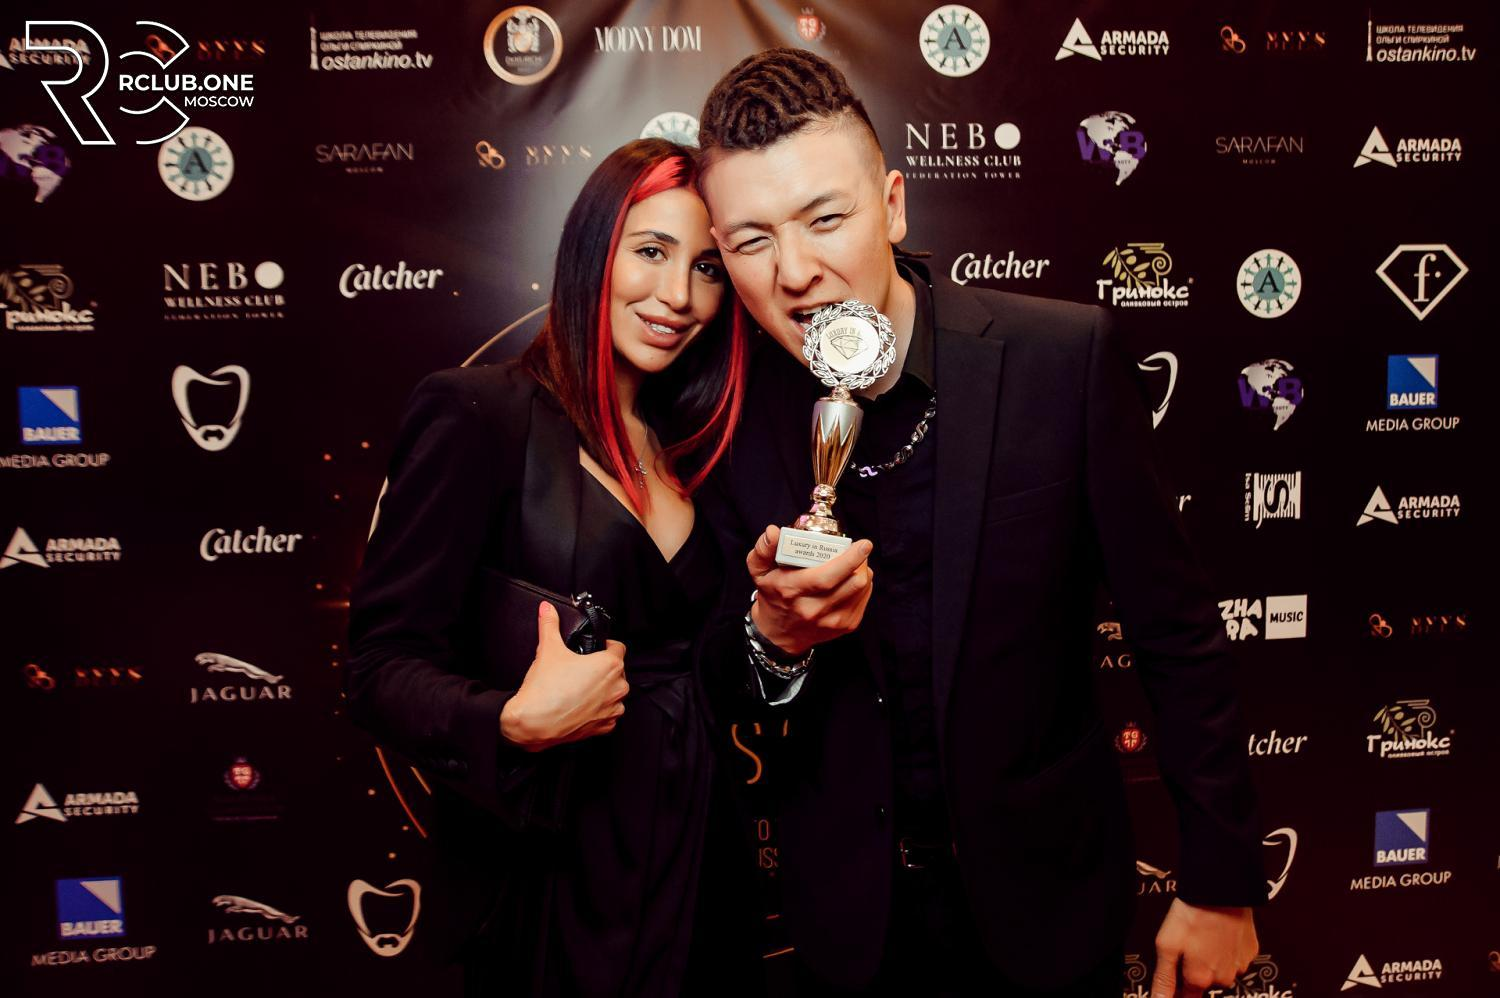 Luxury in Russia Awards 2020